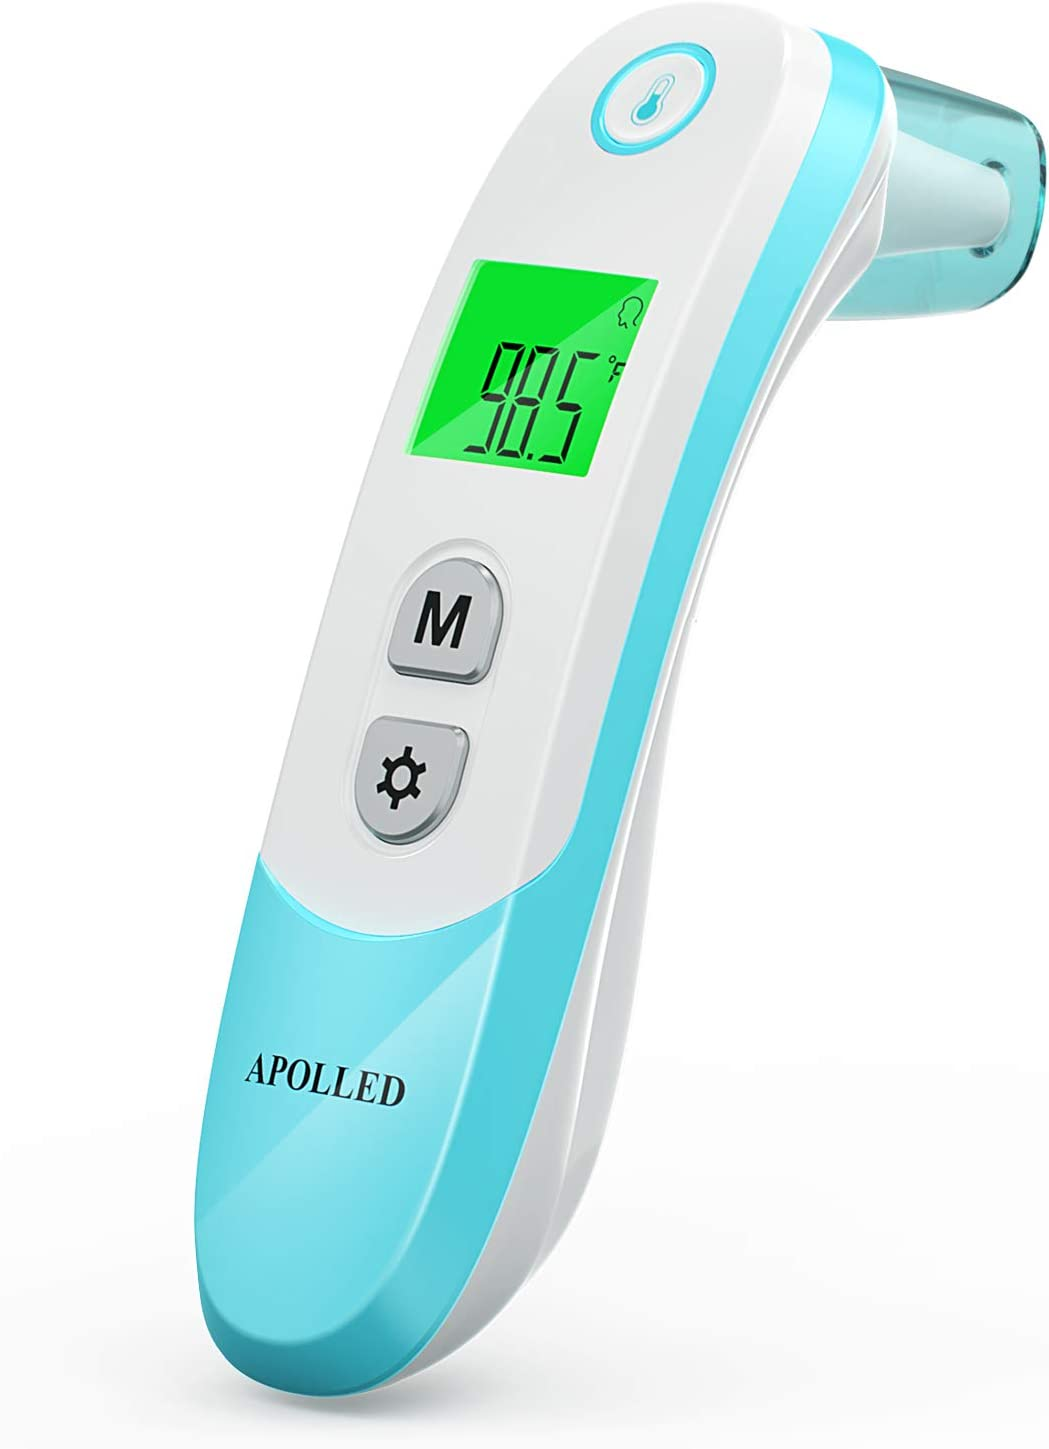 Baby Thermometer, Apolled Infrared Forehead and Ear Thermometer with Fever Alarm, Suitable for Baby and Adults